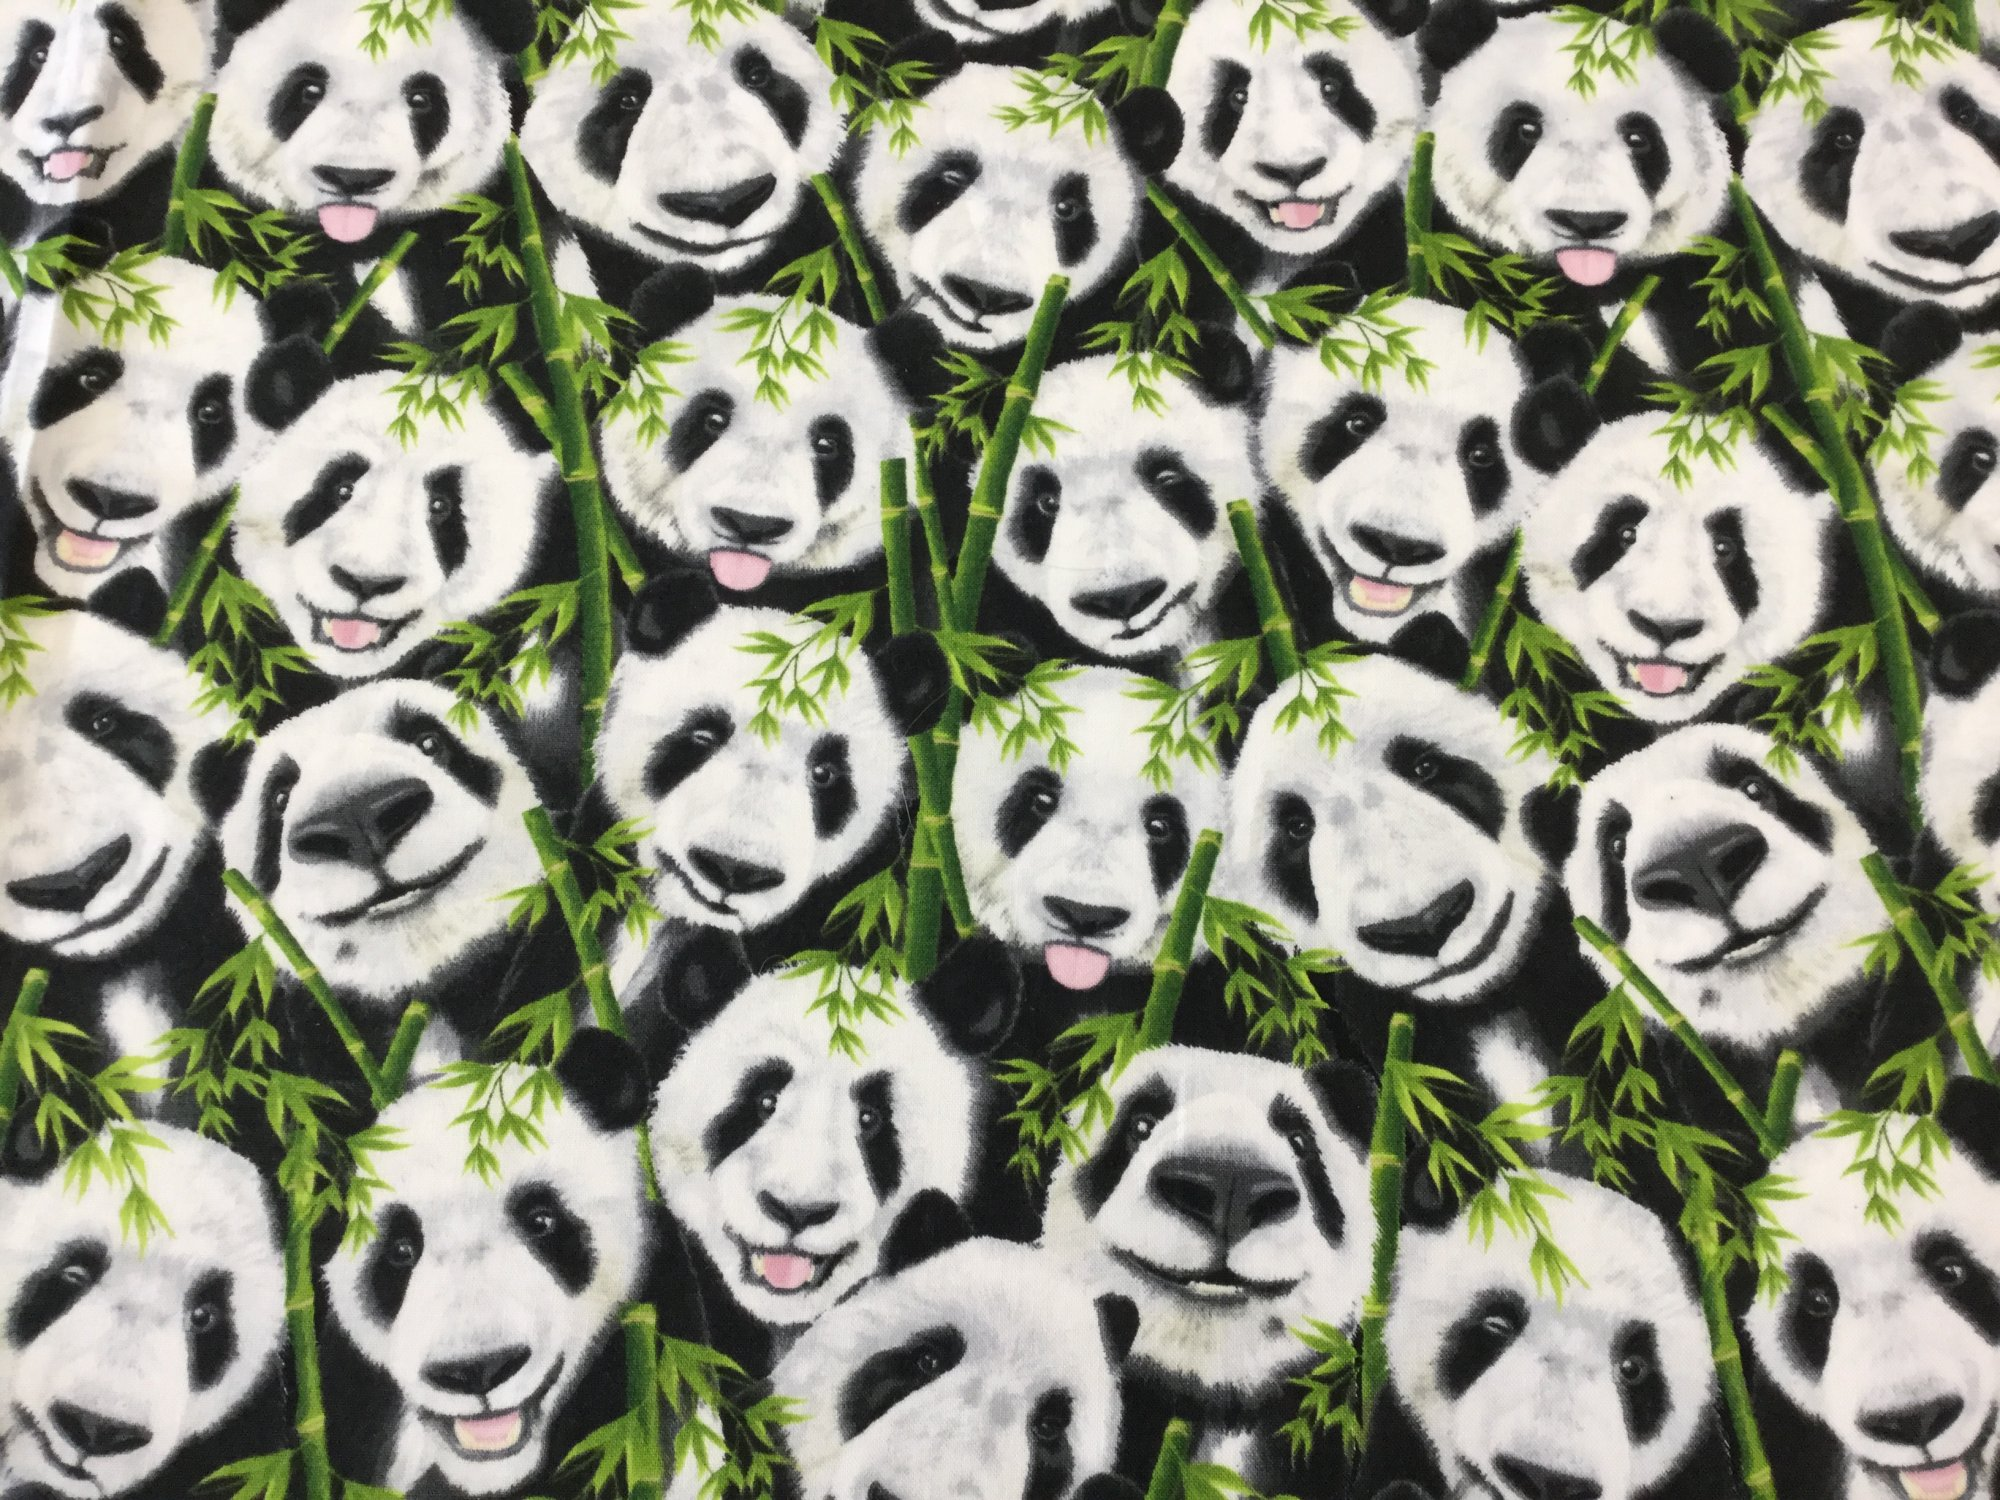 Panda Bear Selfie Cute Panda Faces Bamboo Shoots Cotton Quilt Fabric TT97